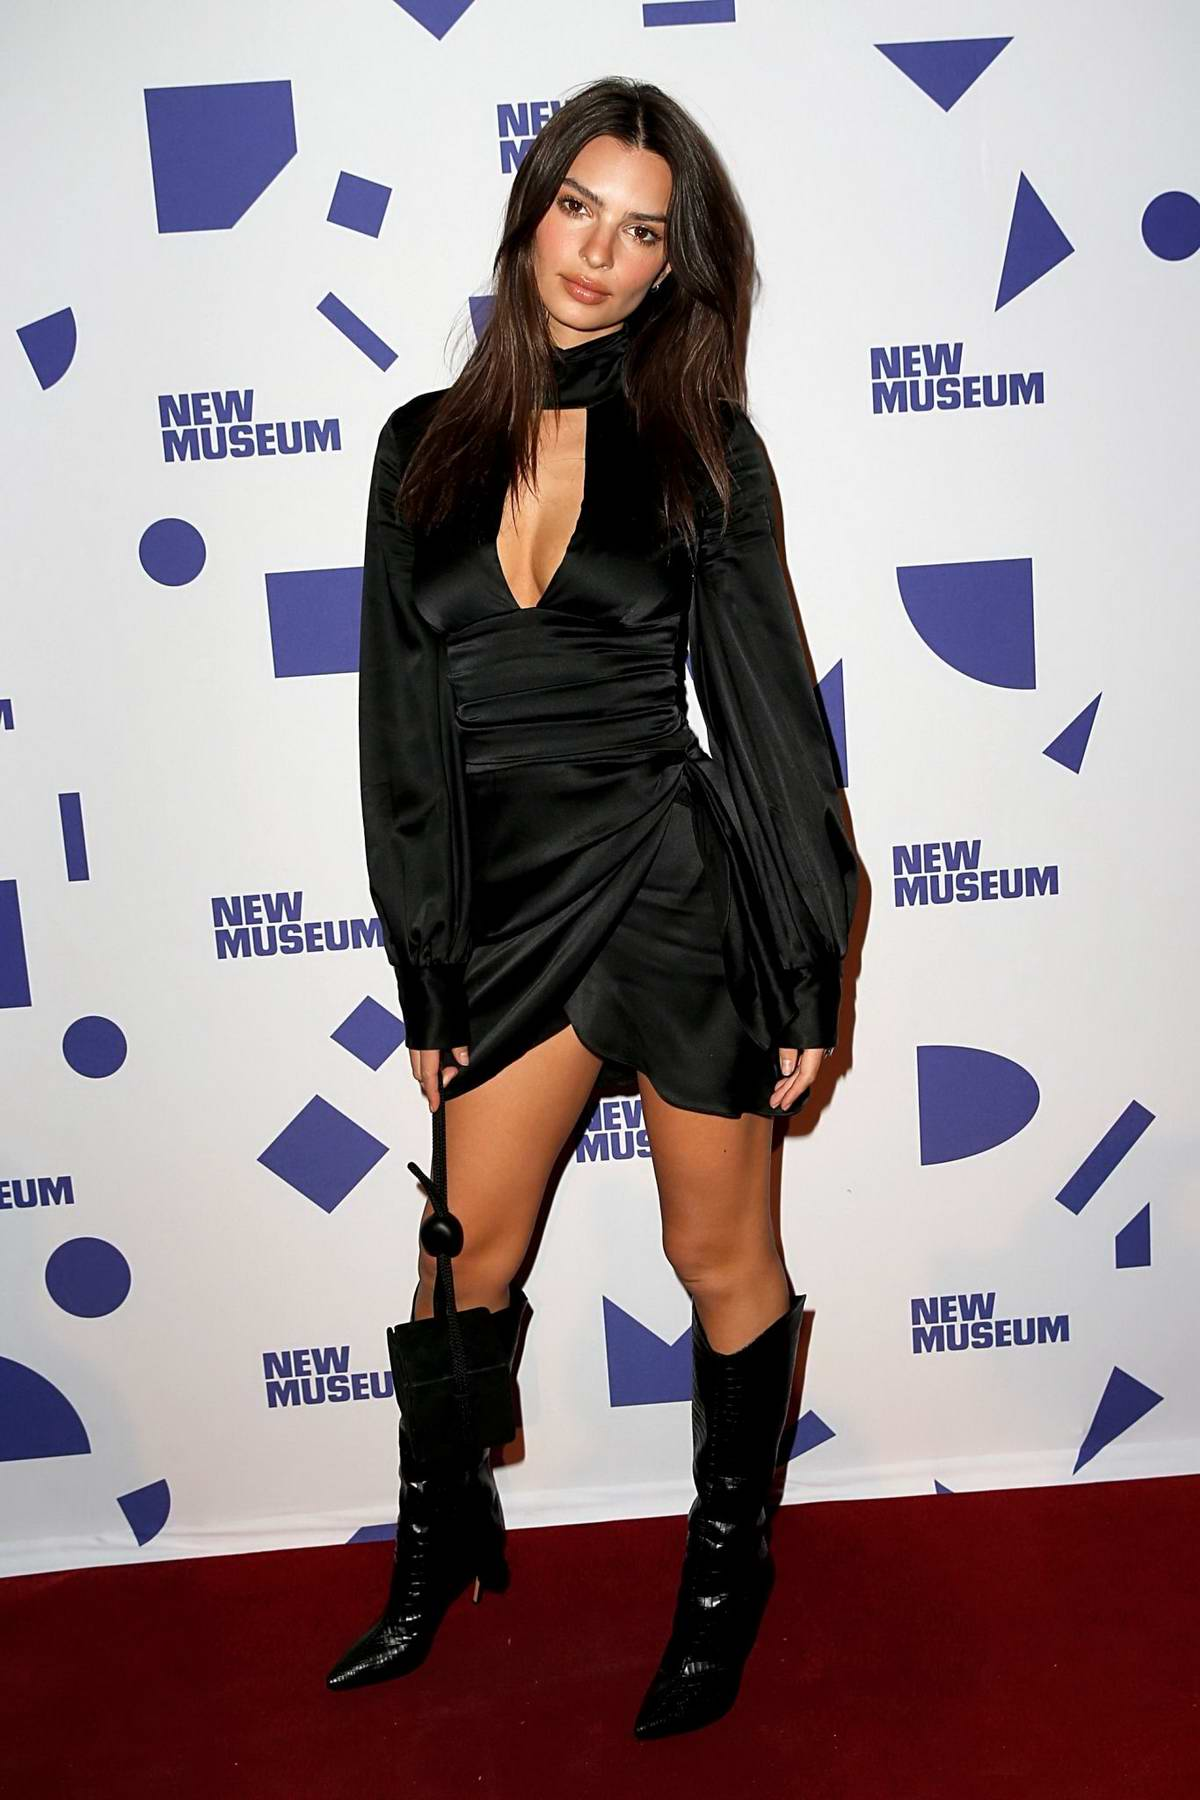 Emily Ratajkowski attends the New Museum 2019 Spring Gala at Cipriani Wall Street in New York City